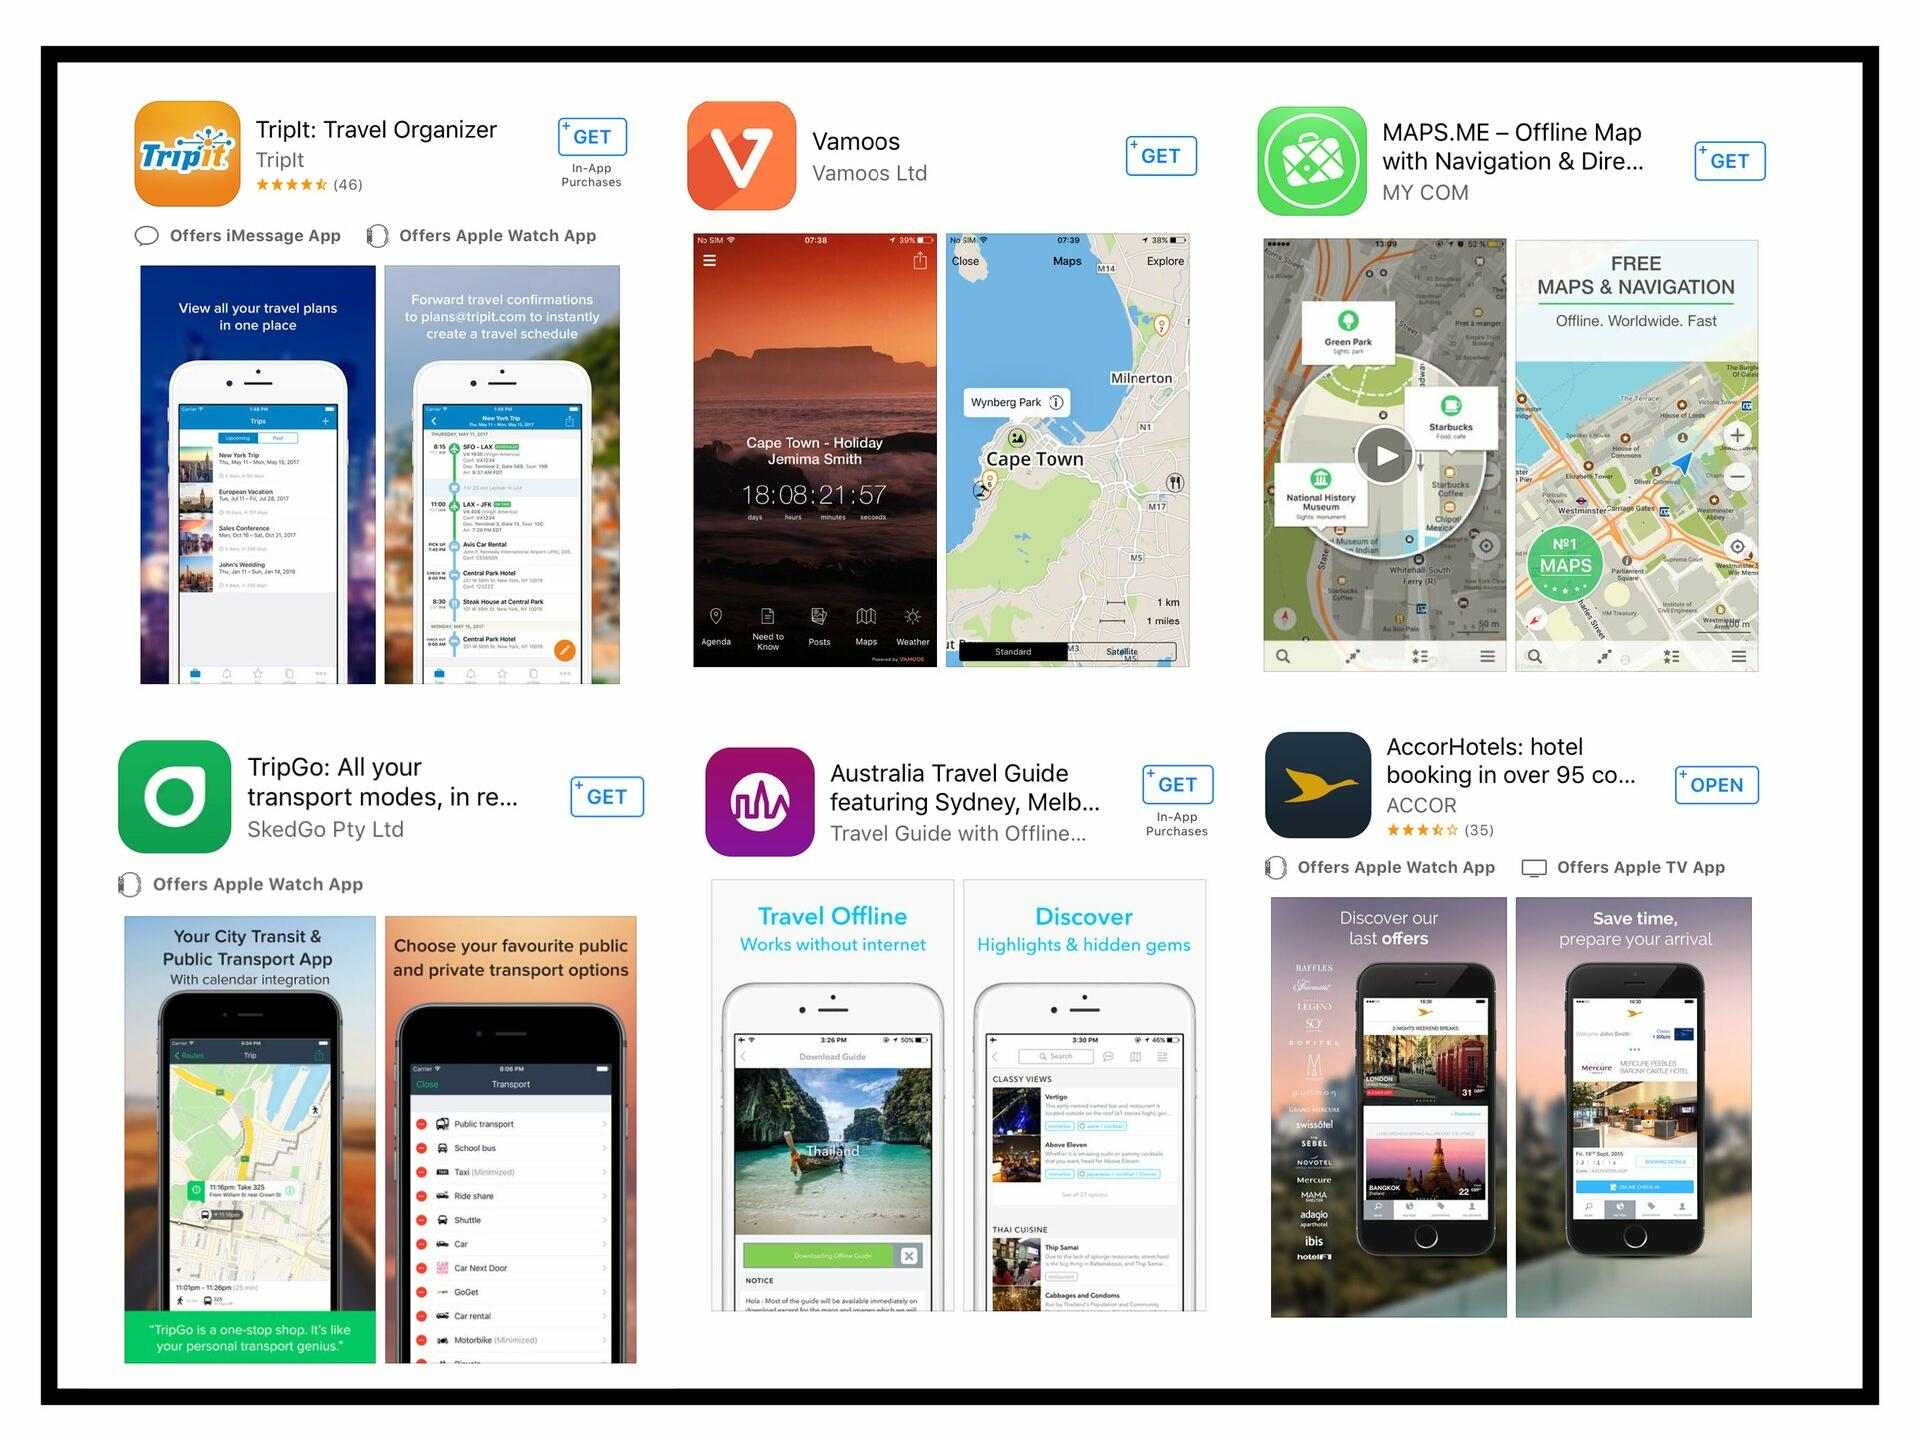 6 travel apps introduced for traveling at Pullman & Mercure Brisbane King George Square